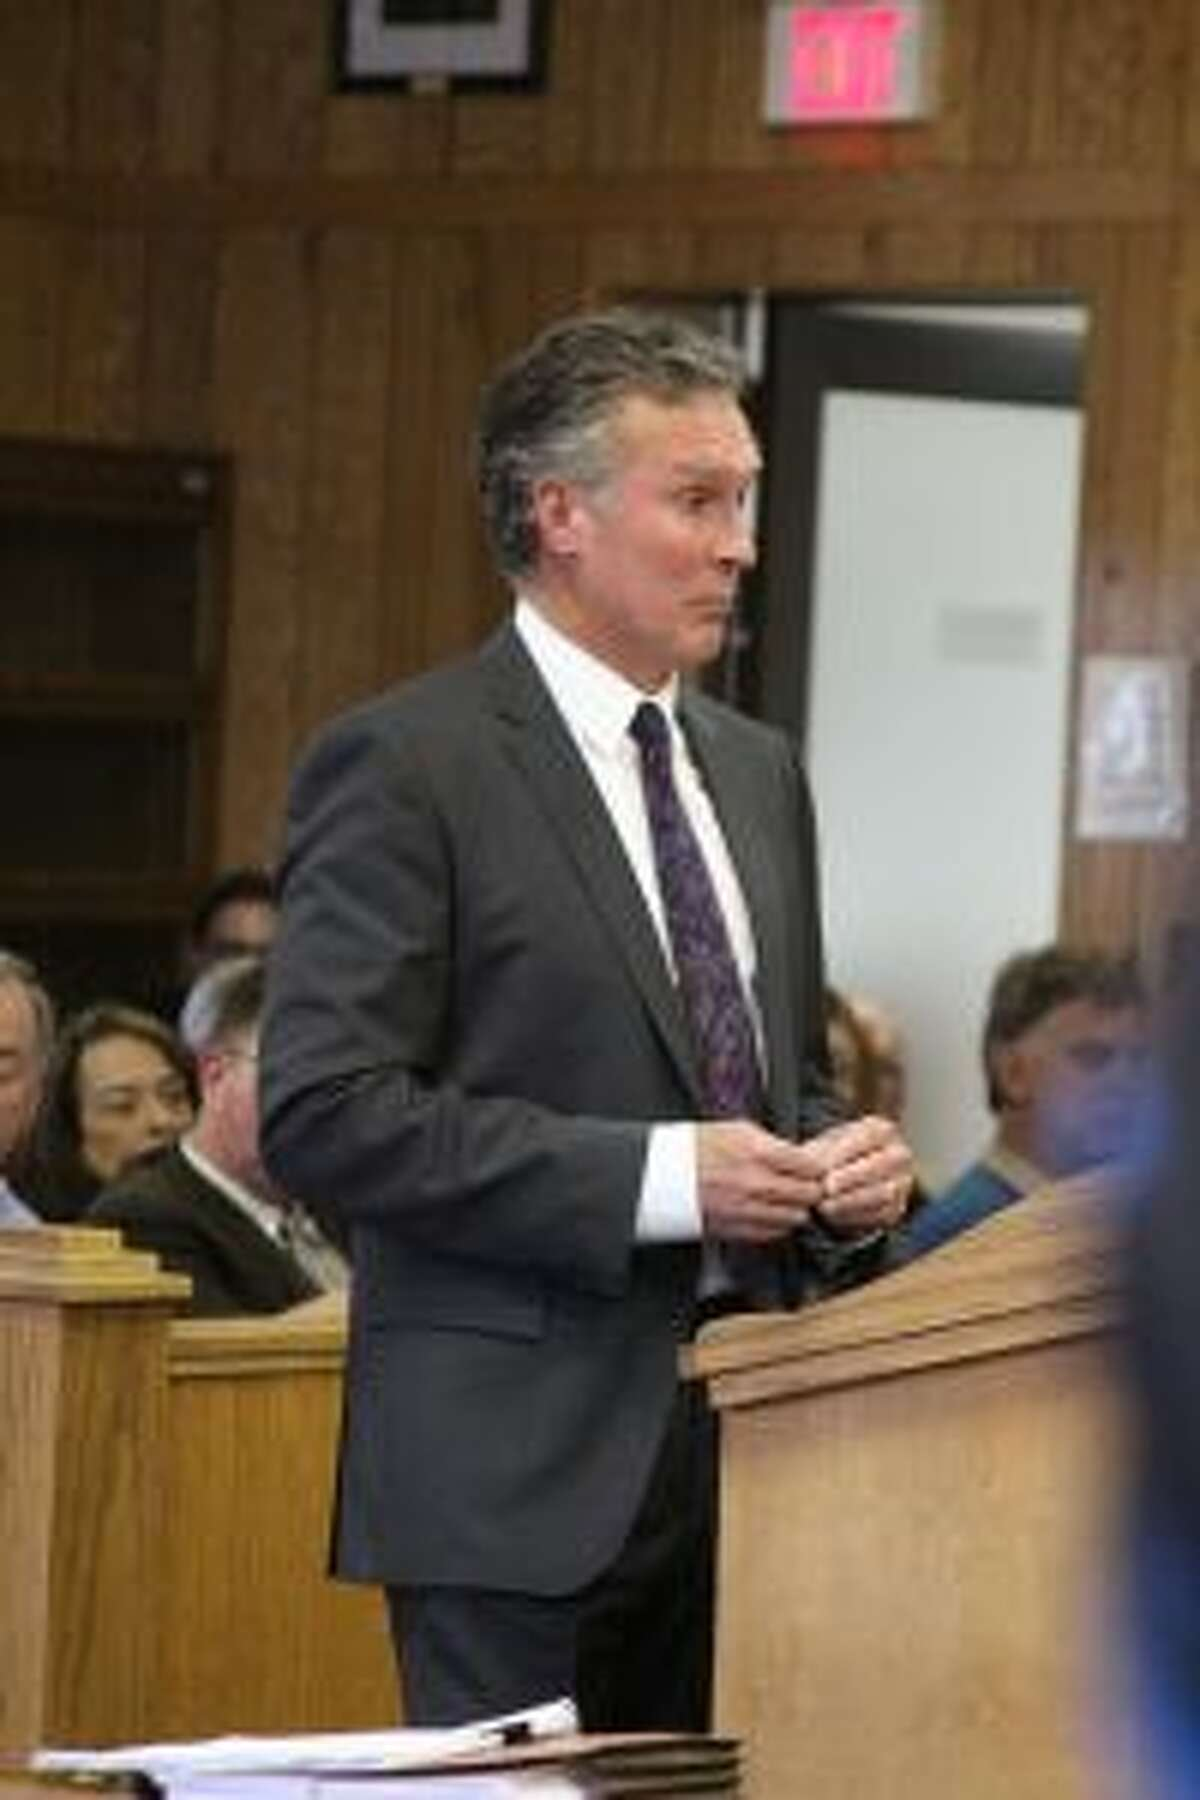 Nestlé Waters North America attorney Bill Horn argues for the company's zoning permit for its booster-pump building to be categorized as a special land use permit during oral arguments on Nov. 15, 2017, in 49th Circuit Court in Reed City. The decision from the case is being appealed by the township. (Pioneer file photo)